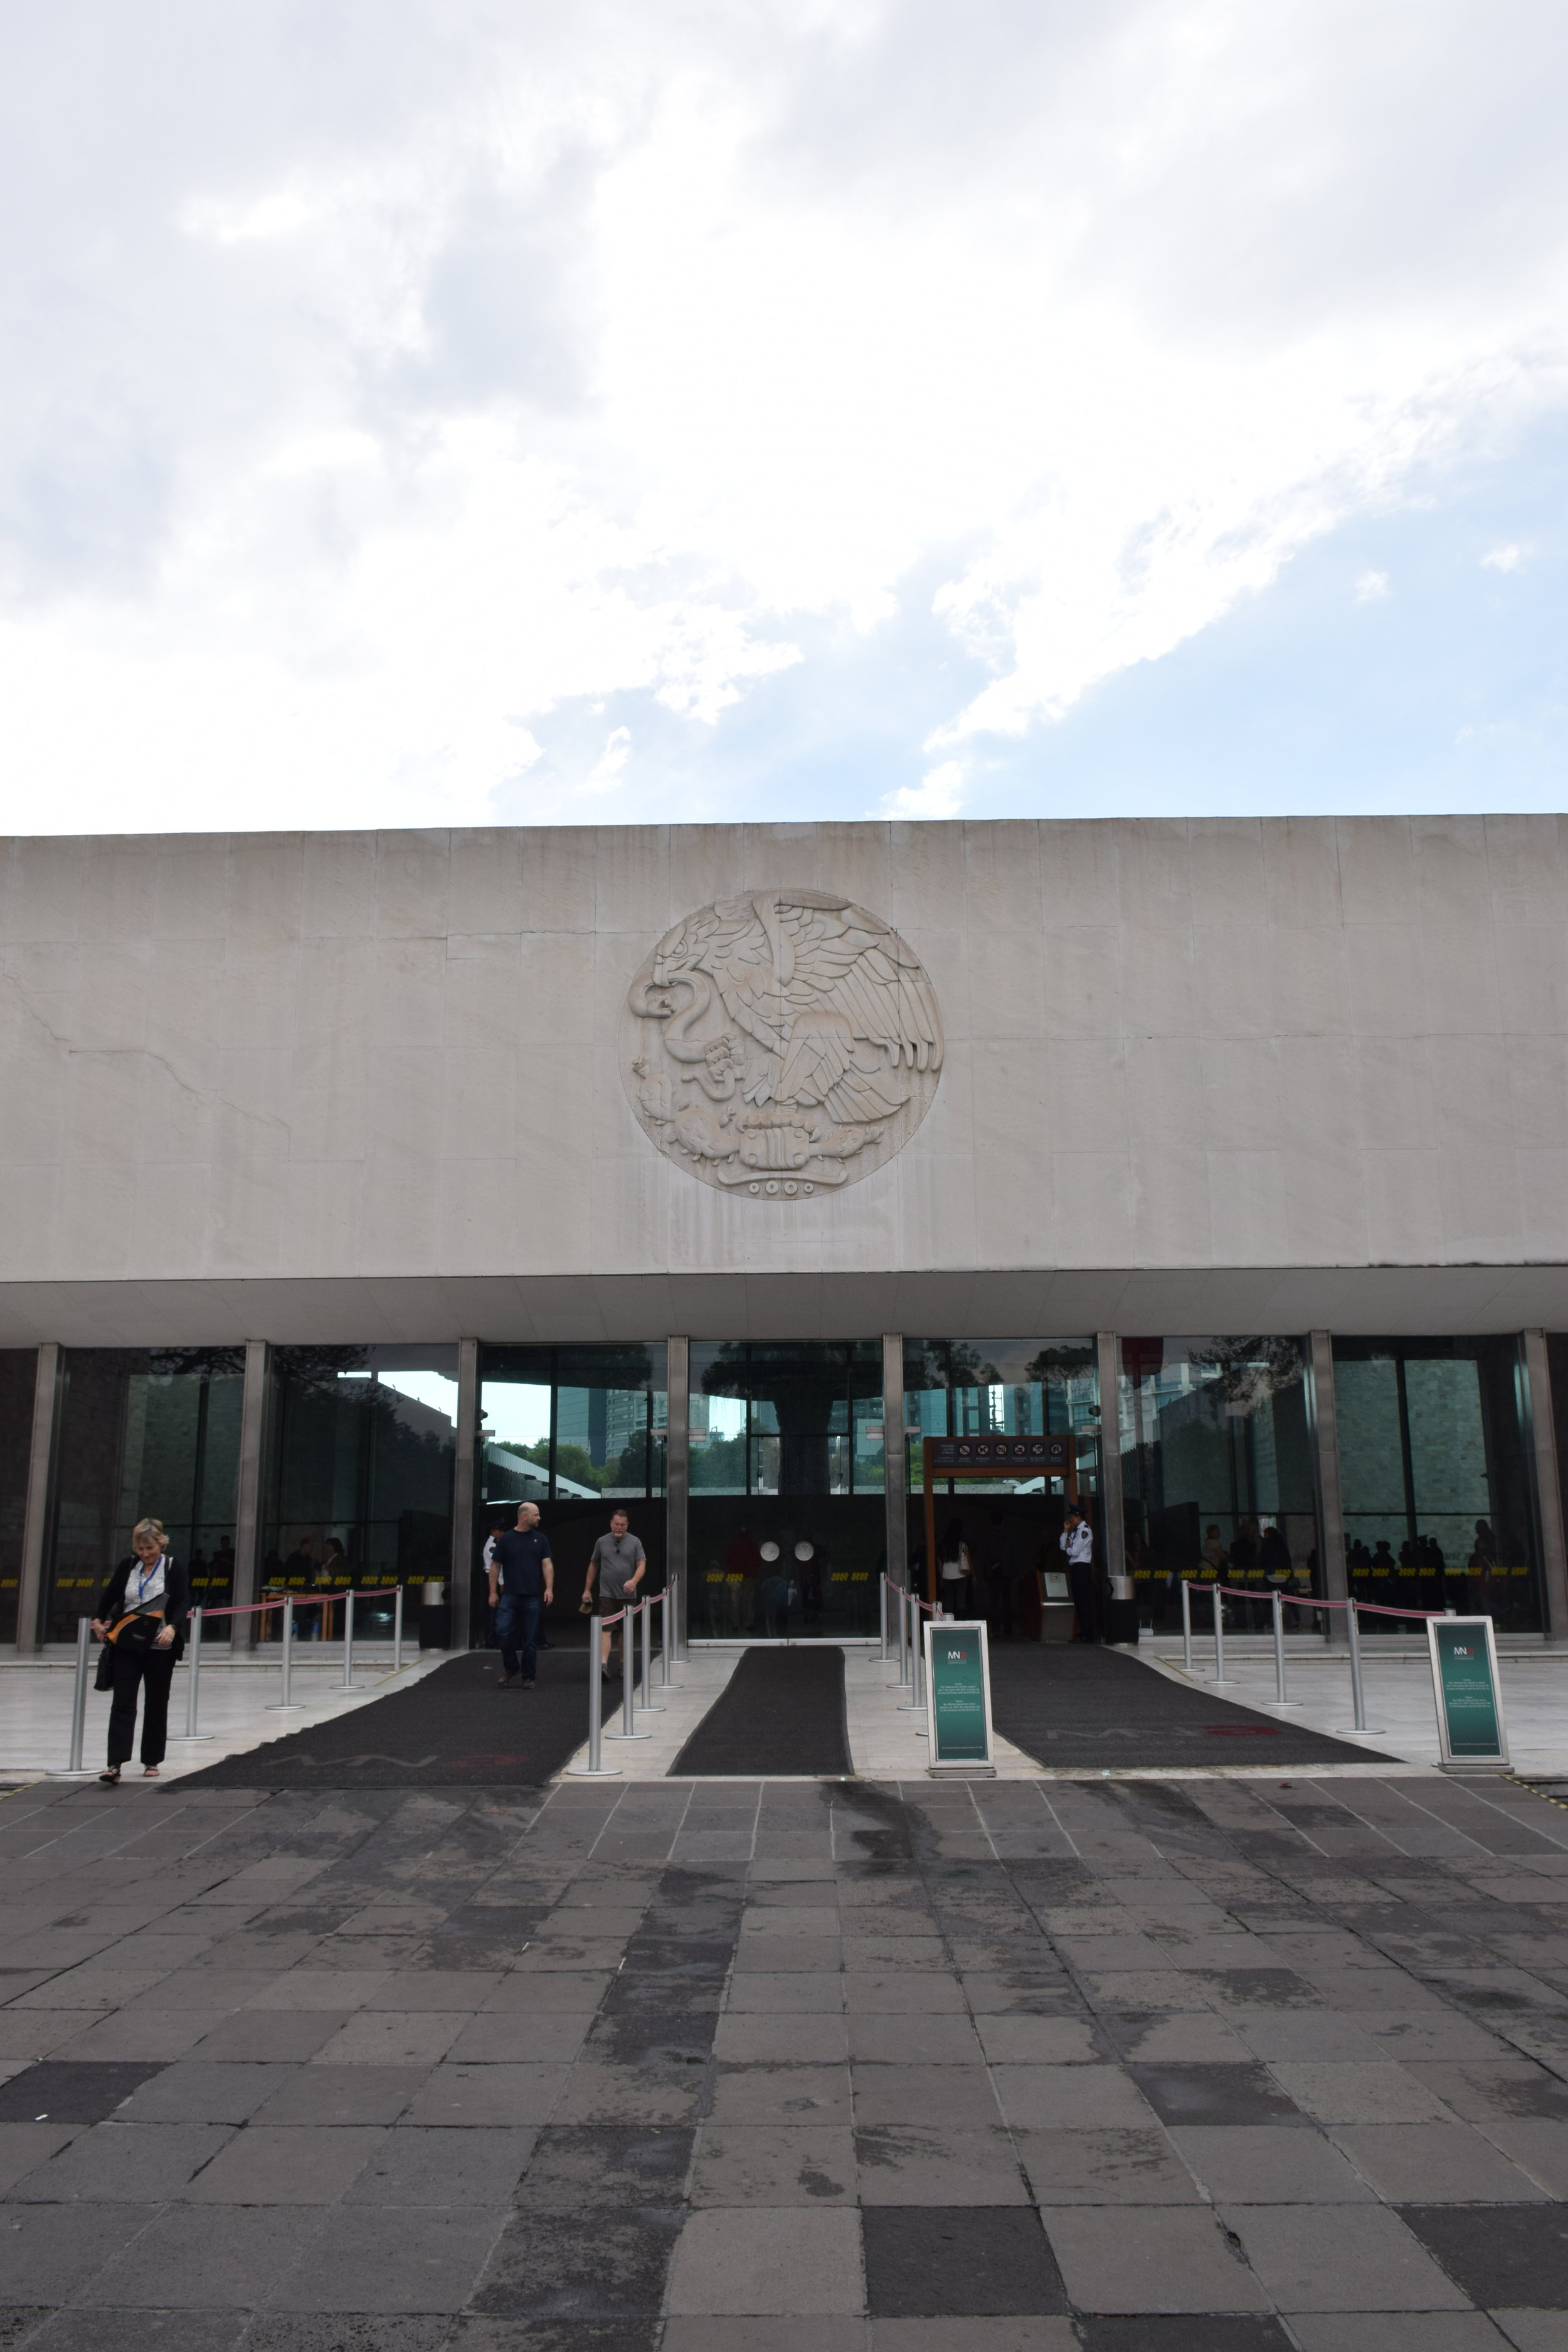 From the outside looking in: the museum's entrance with the seal above the doors